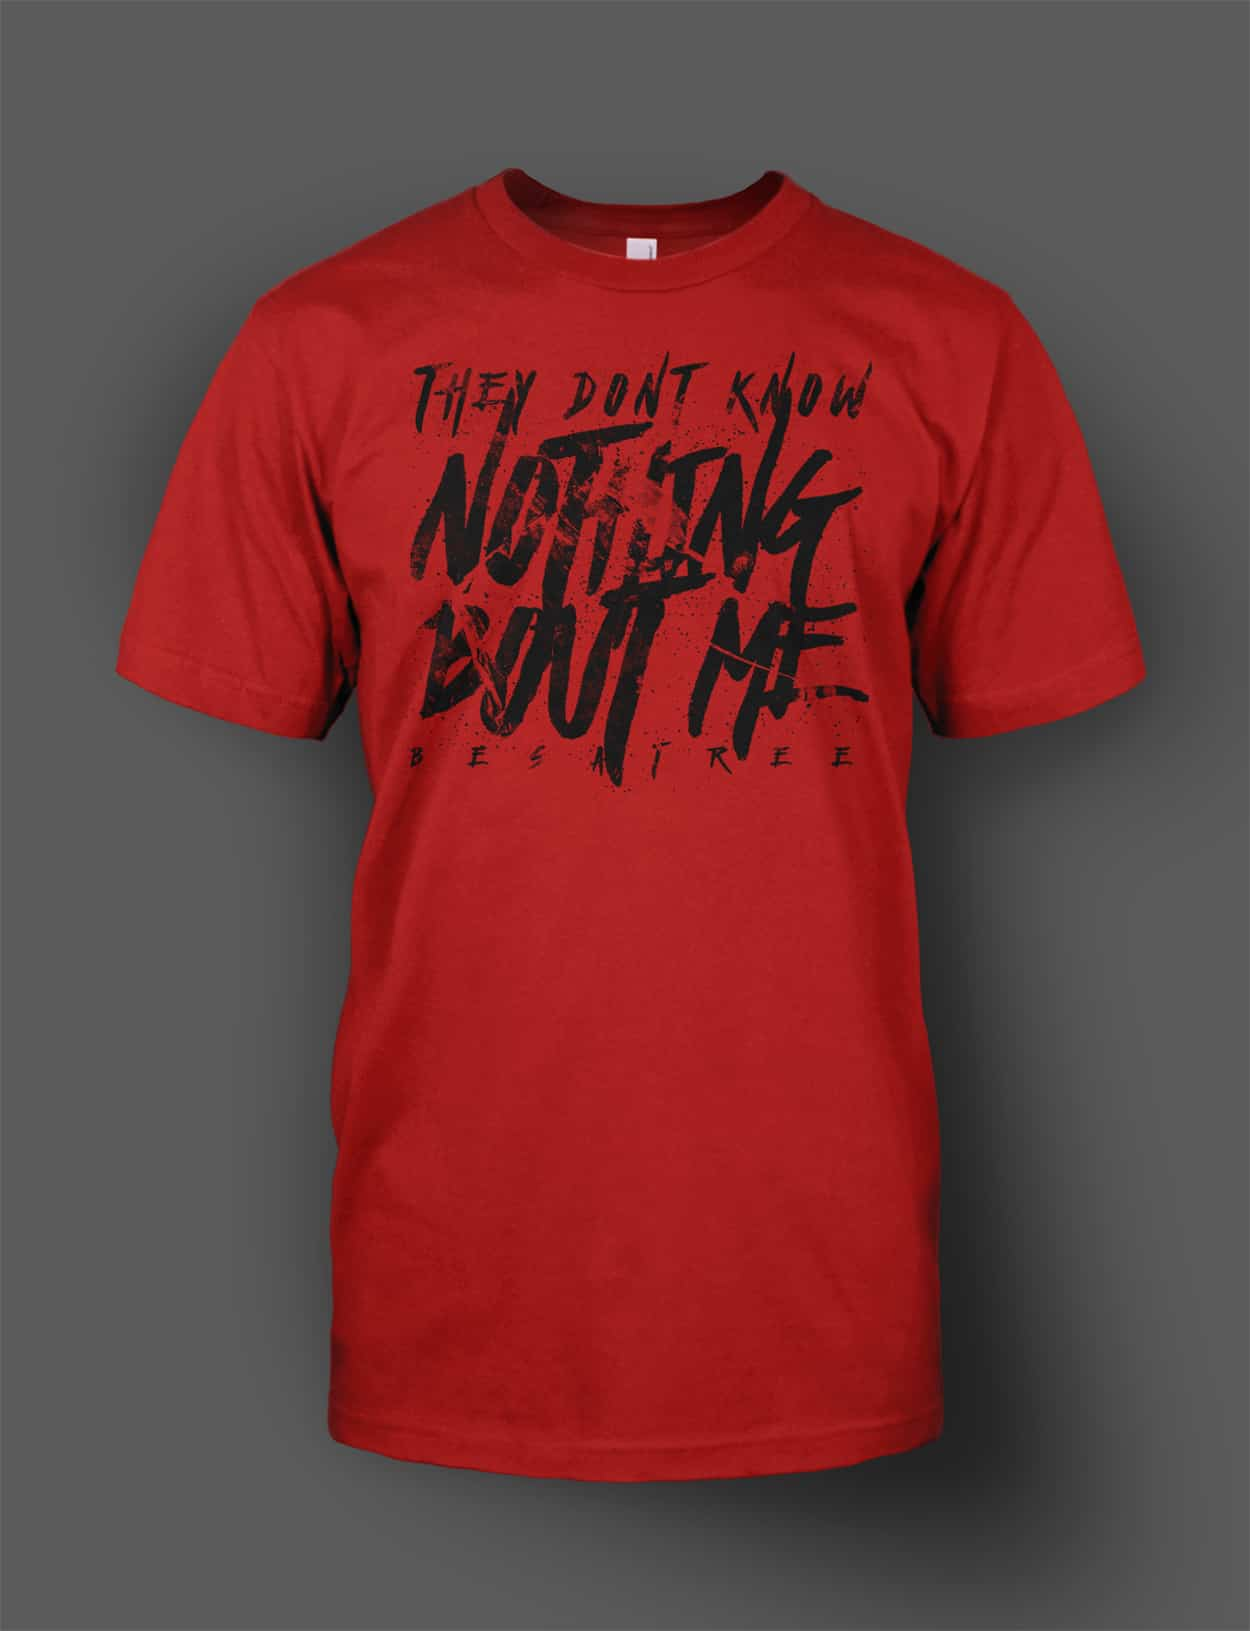 besatree - stay illuminated - nothing bout me - tshirt design